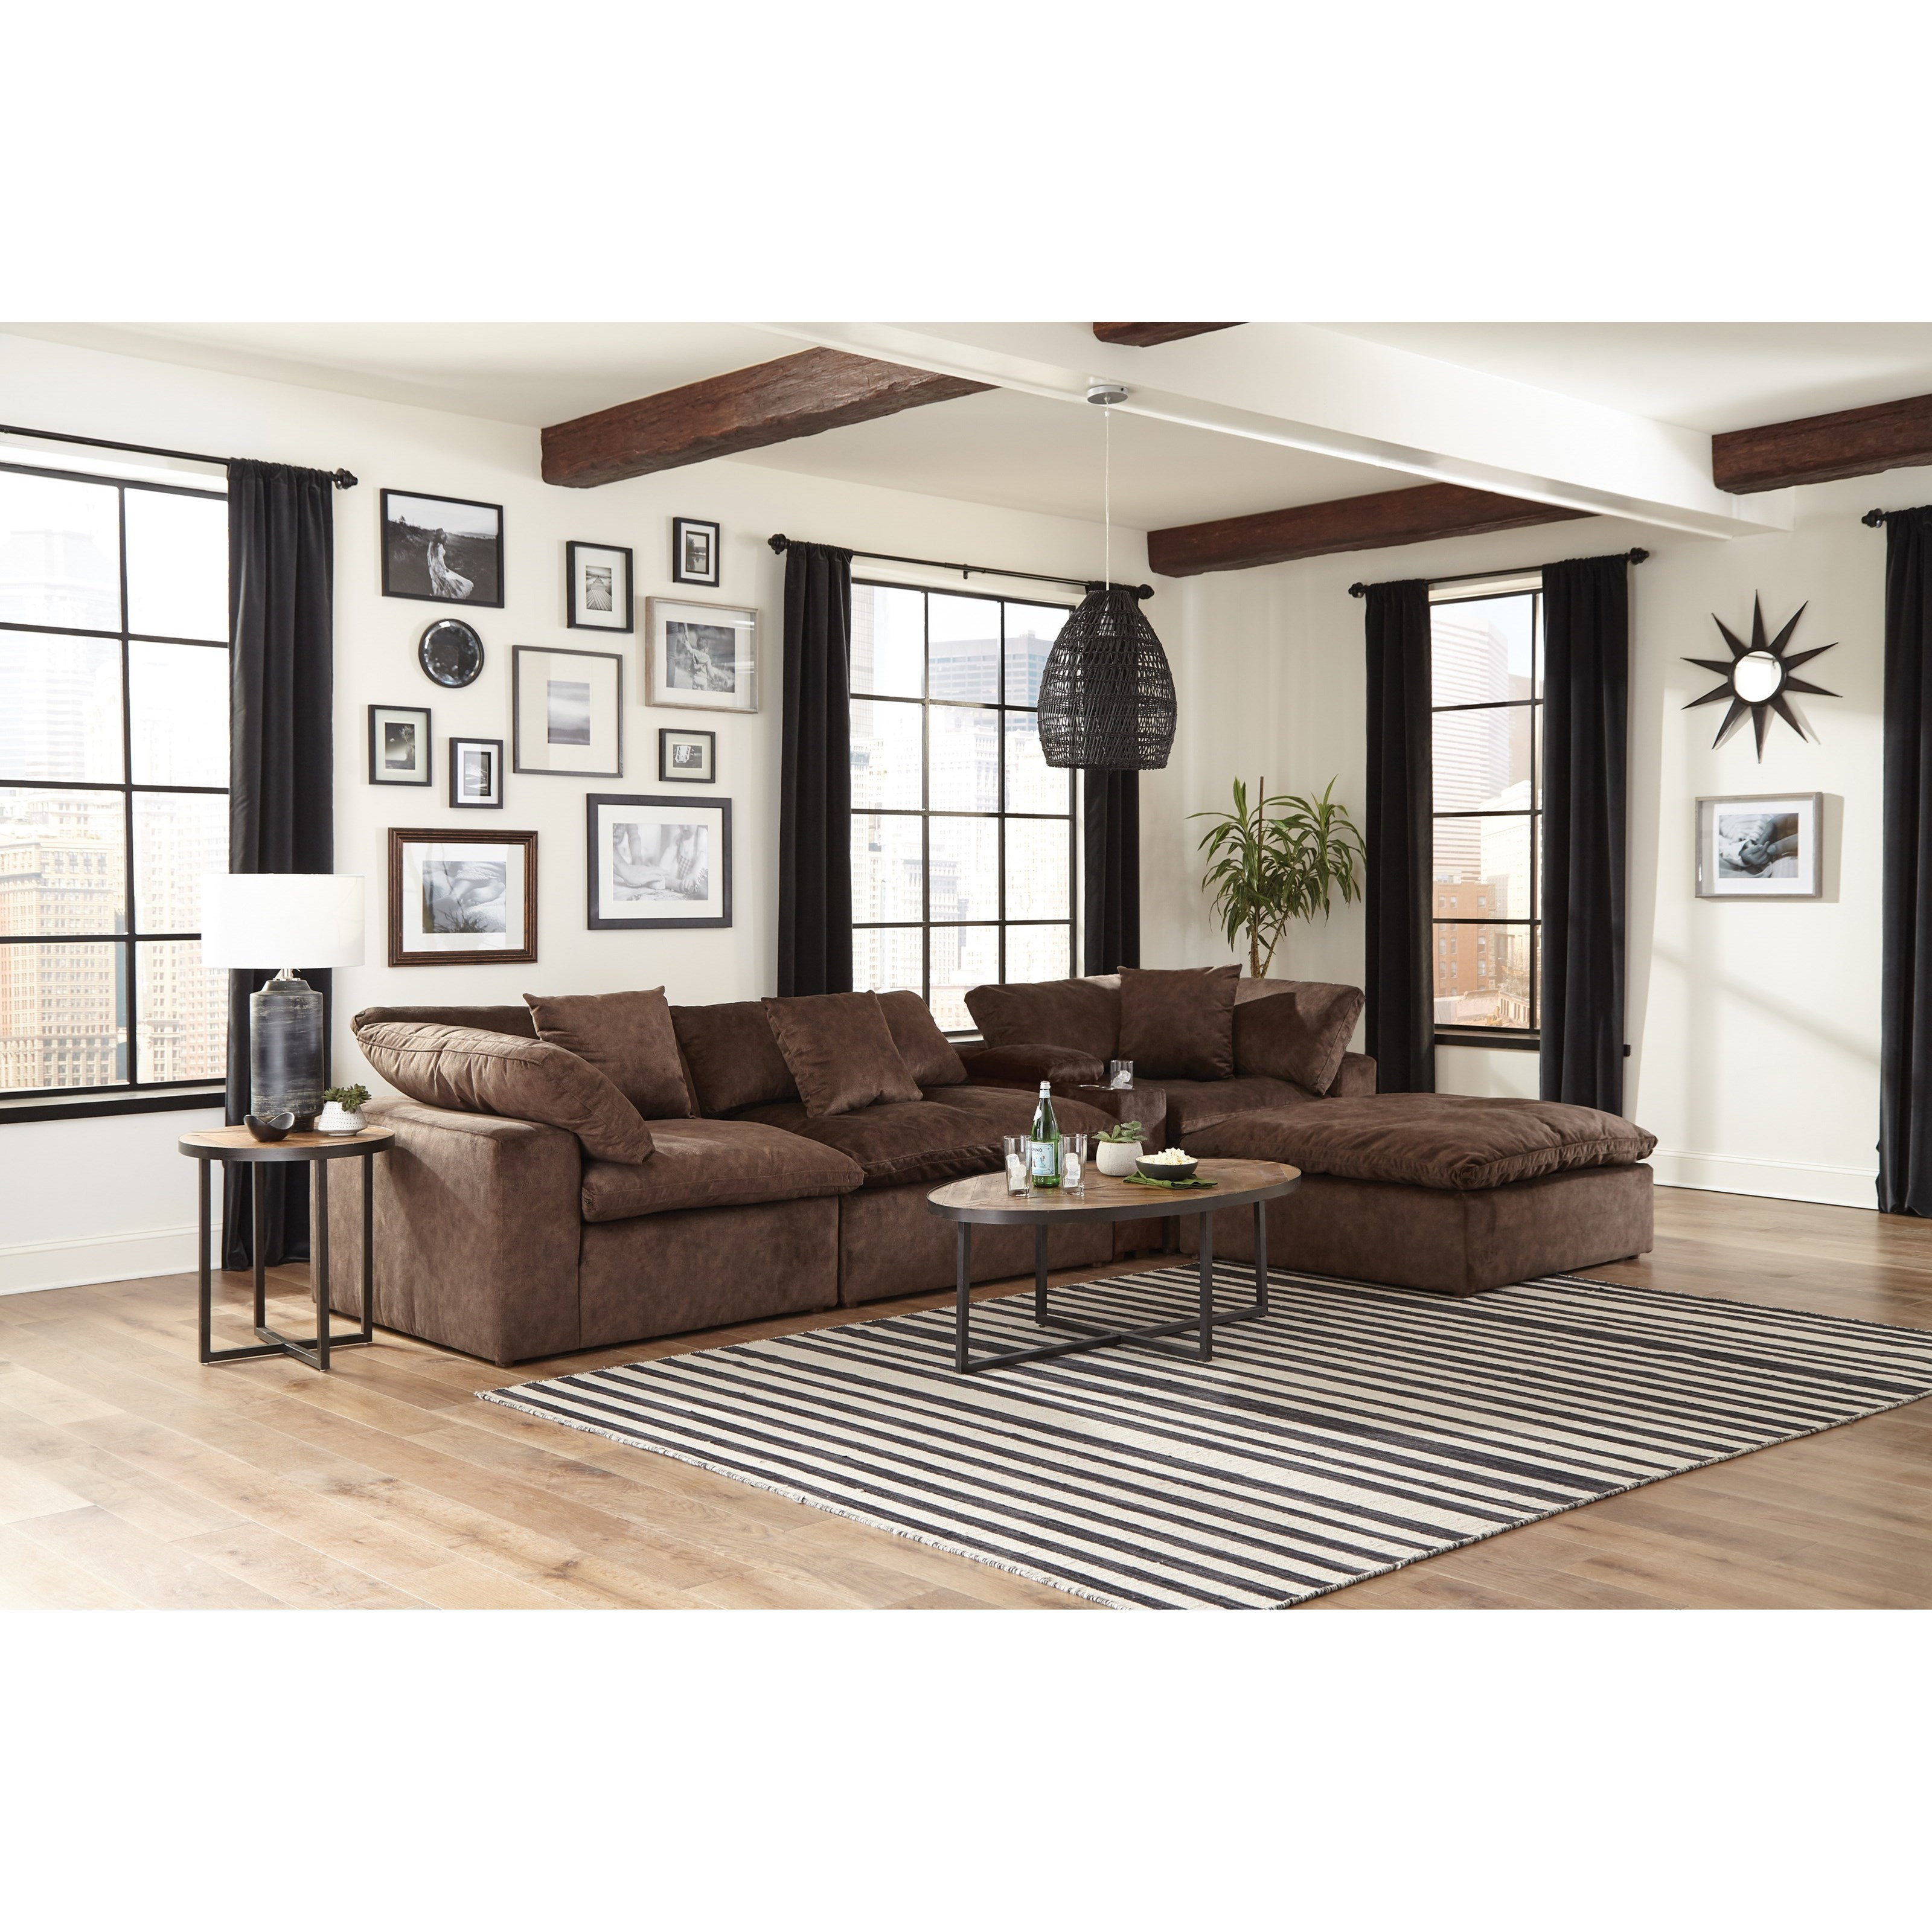 Jackson Furniture Plush Chaise Sectional with Storage ...